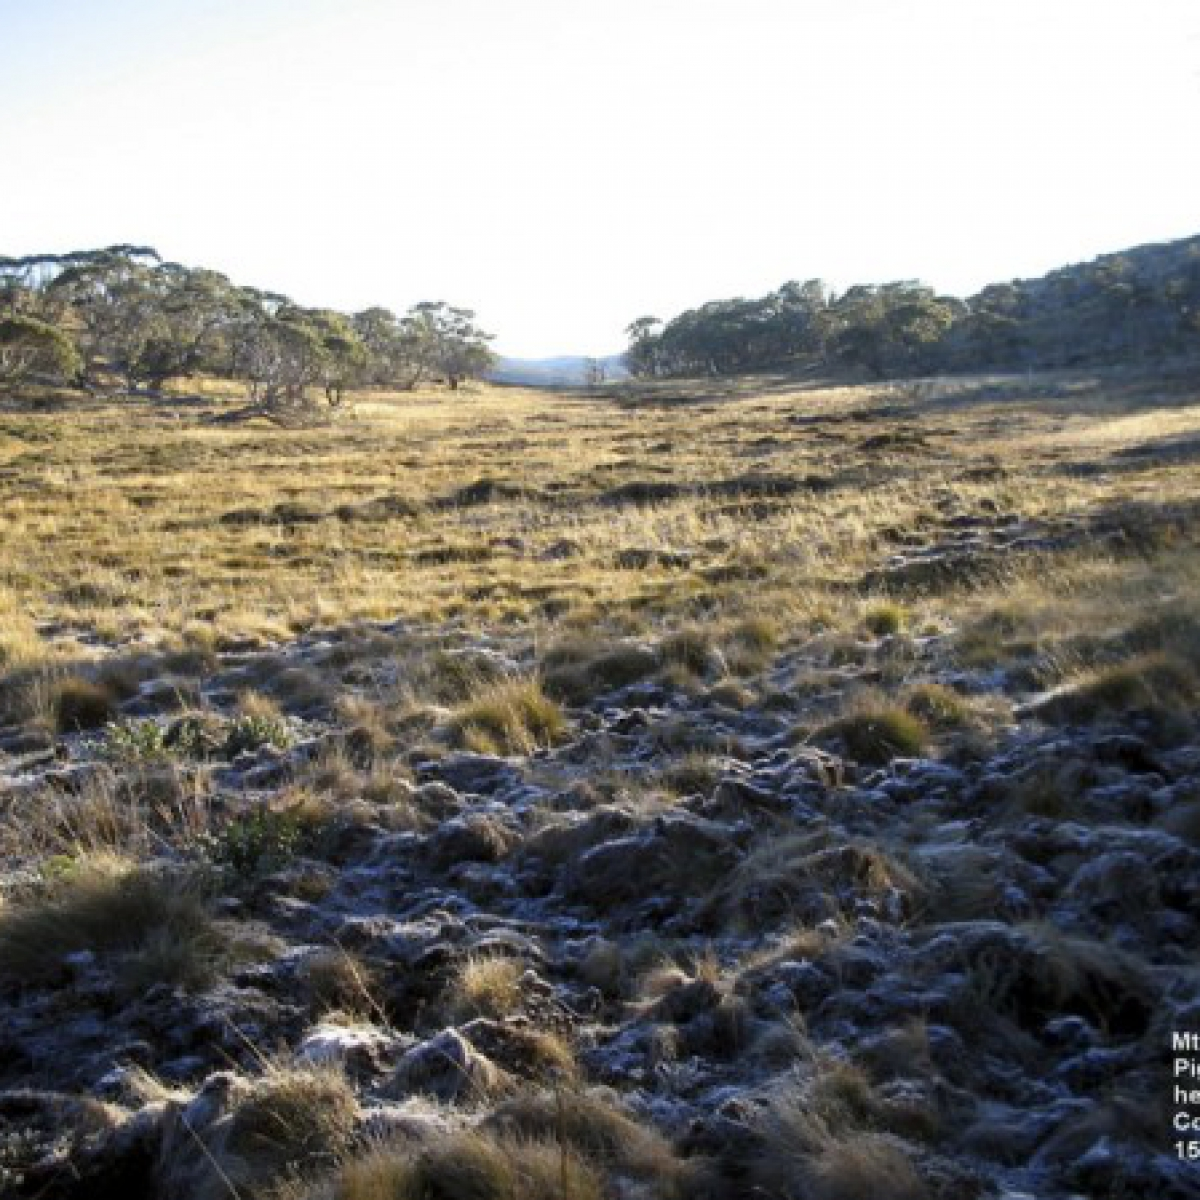 Headwaters of the Cotter River - Mt Scabby